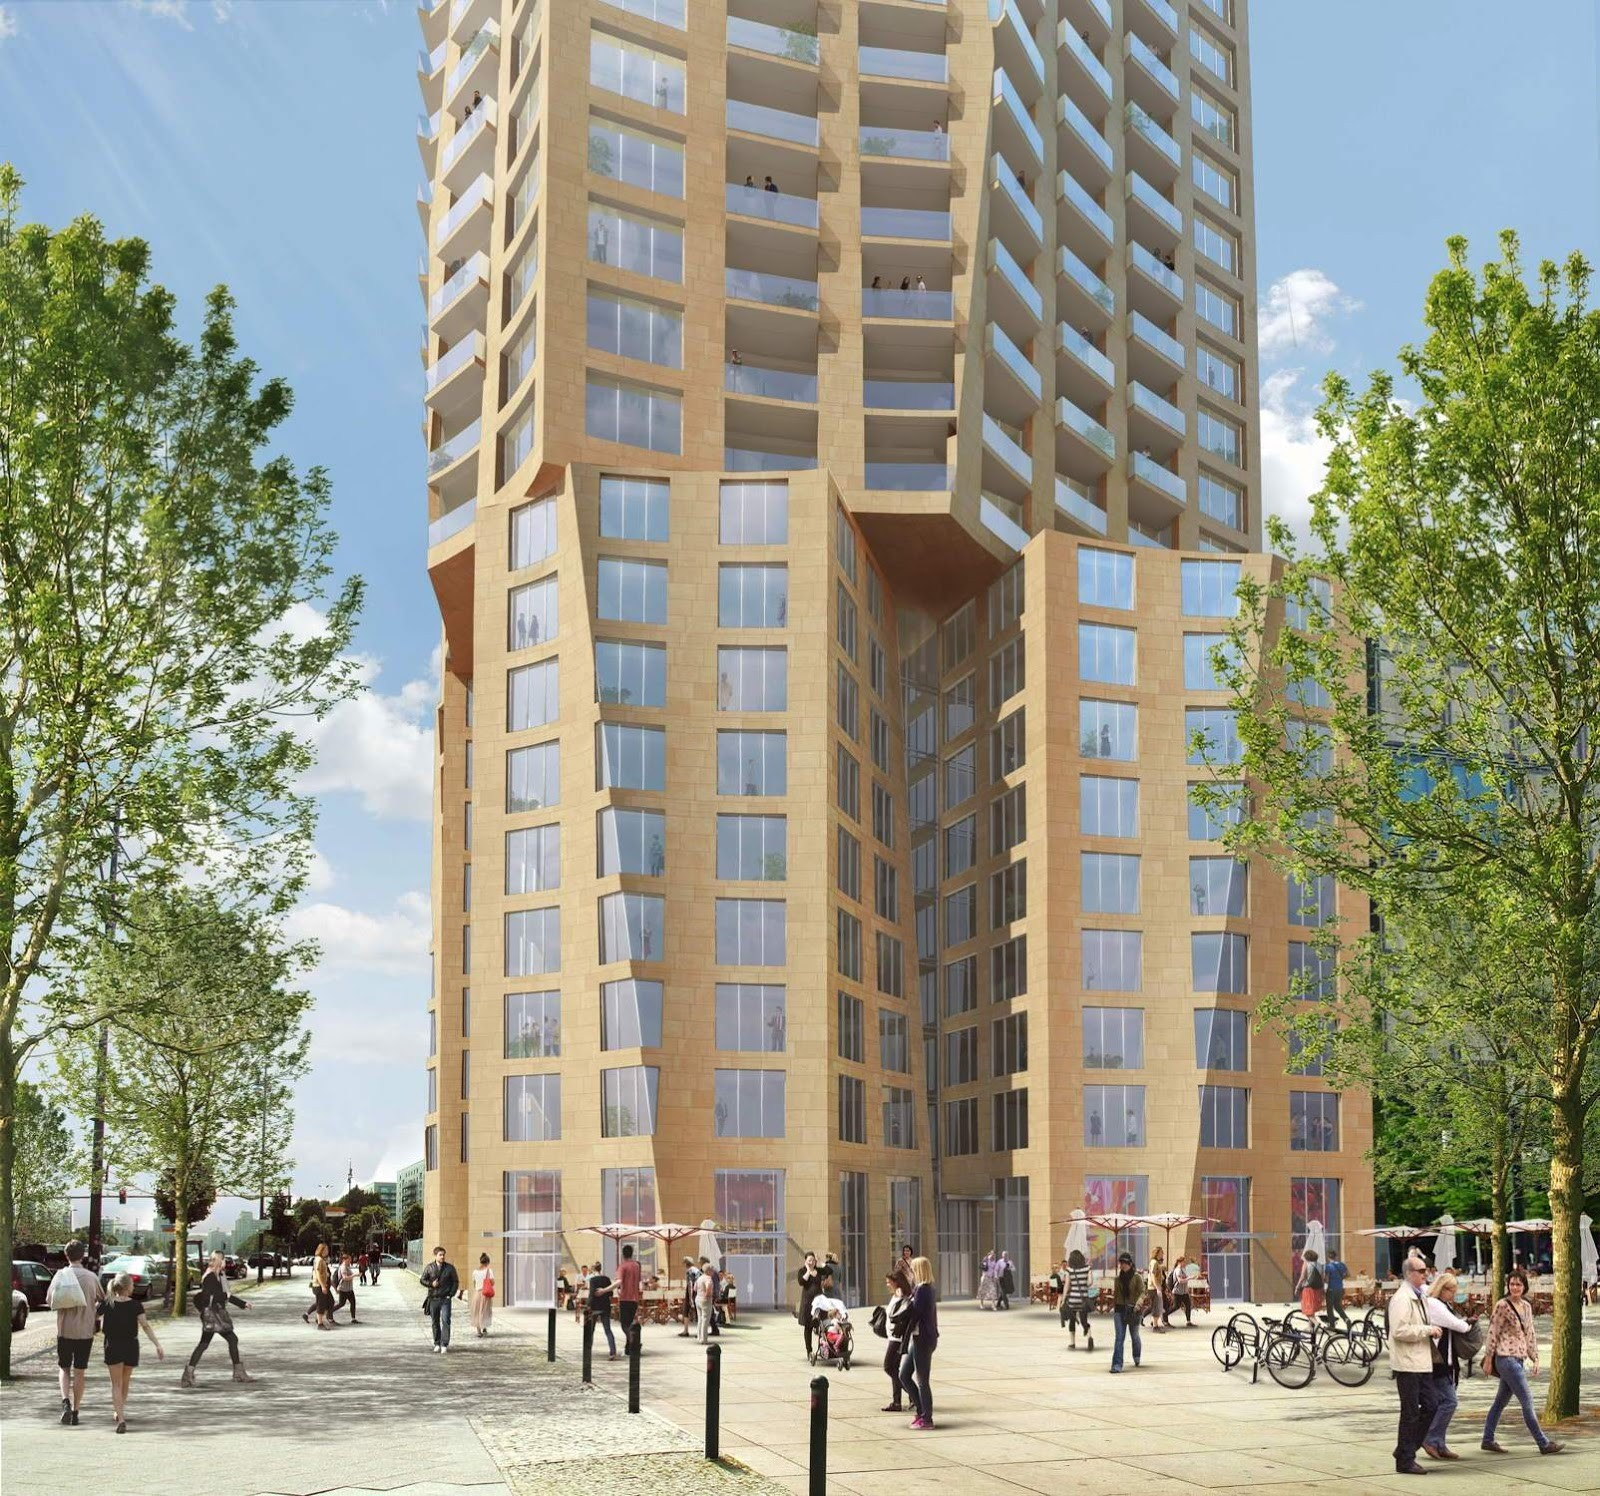 Gallery of frank gehry chosen to design berlin 39 s tallest for Design berlin